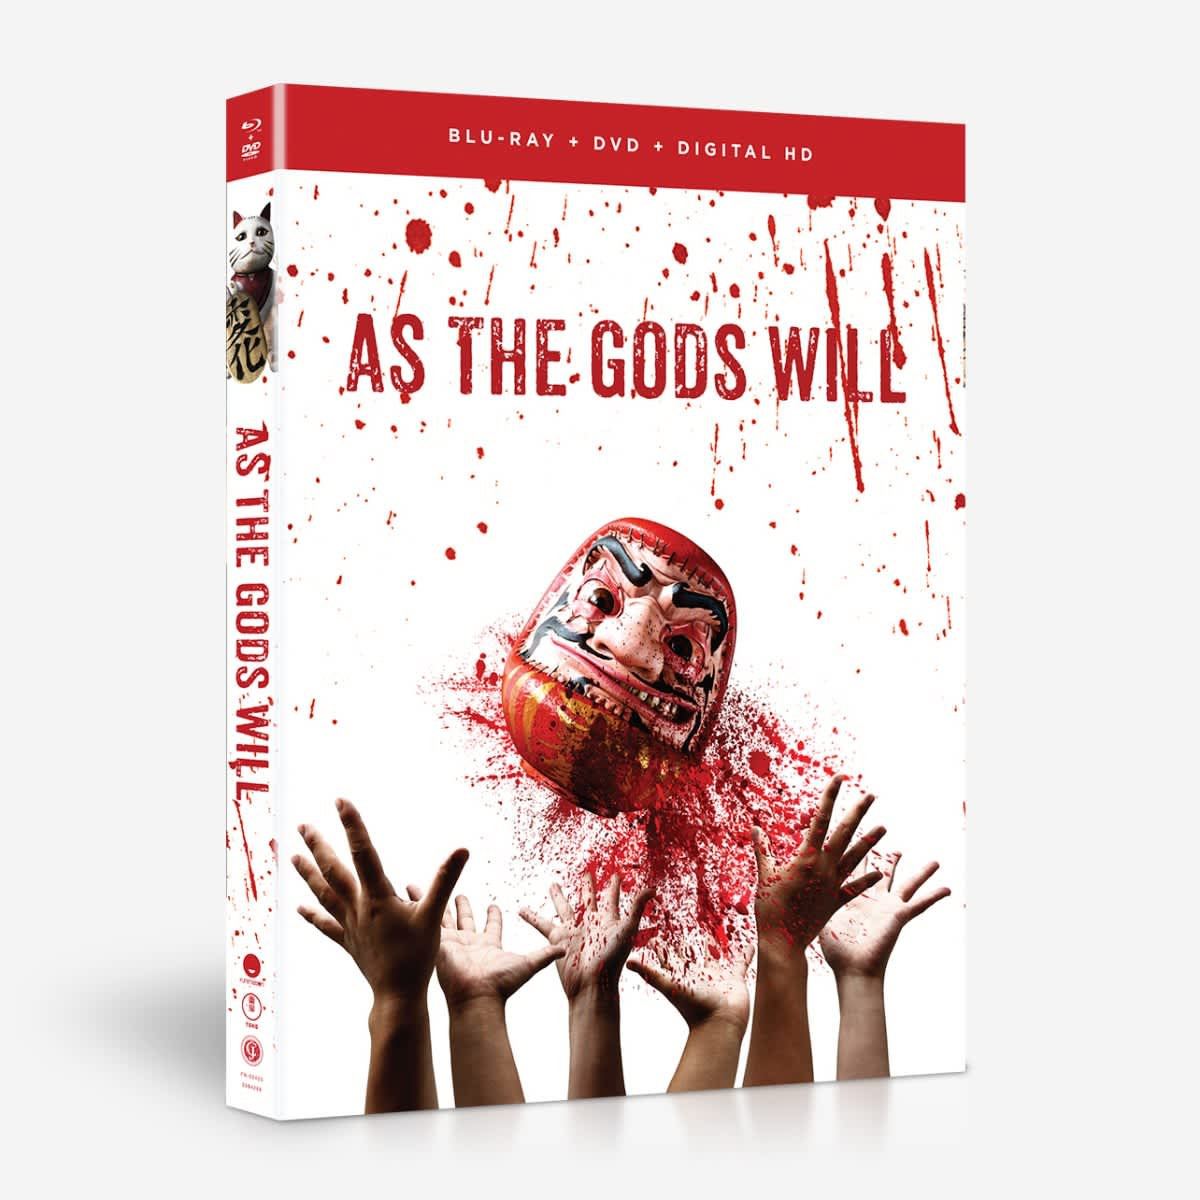 As the Gods Will Blu-ray/DVD 704400024054